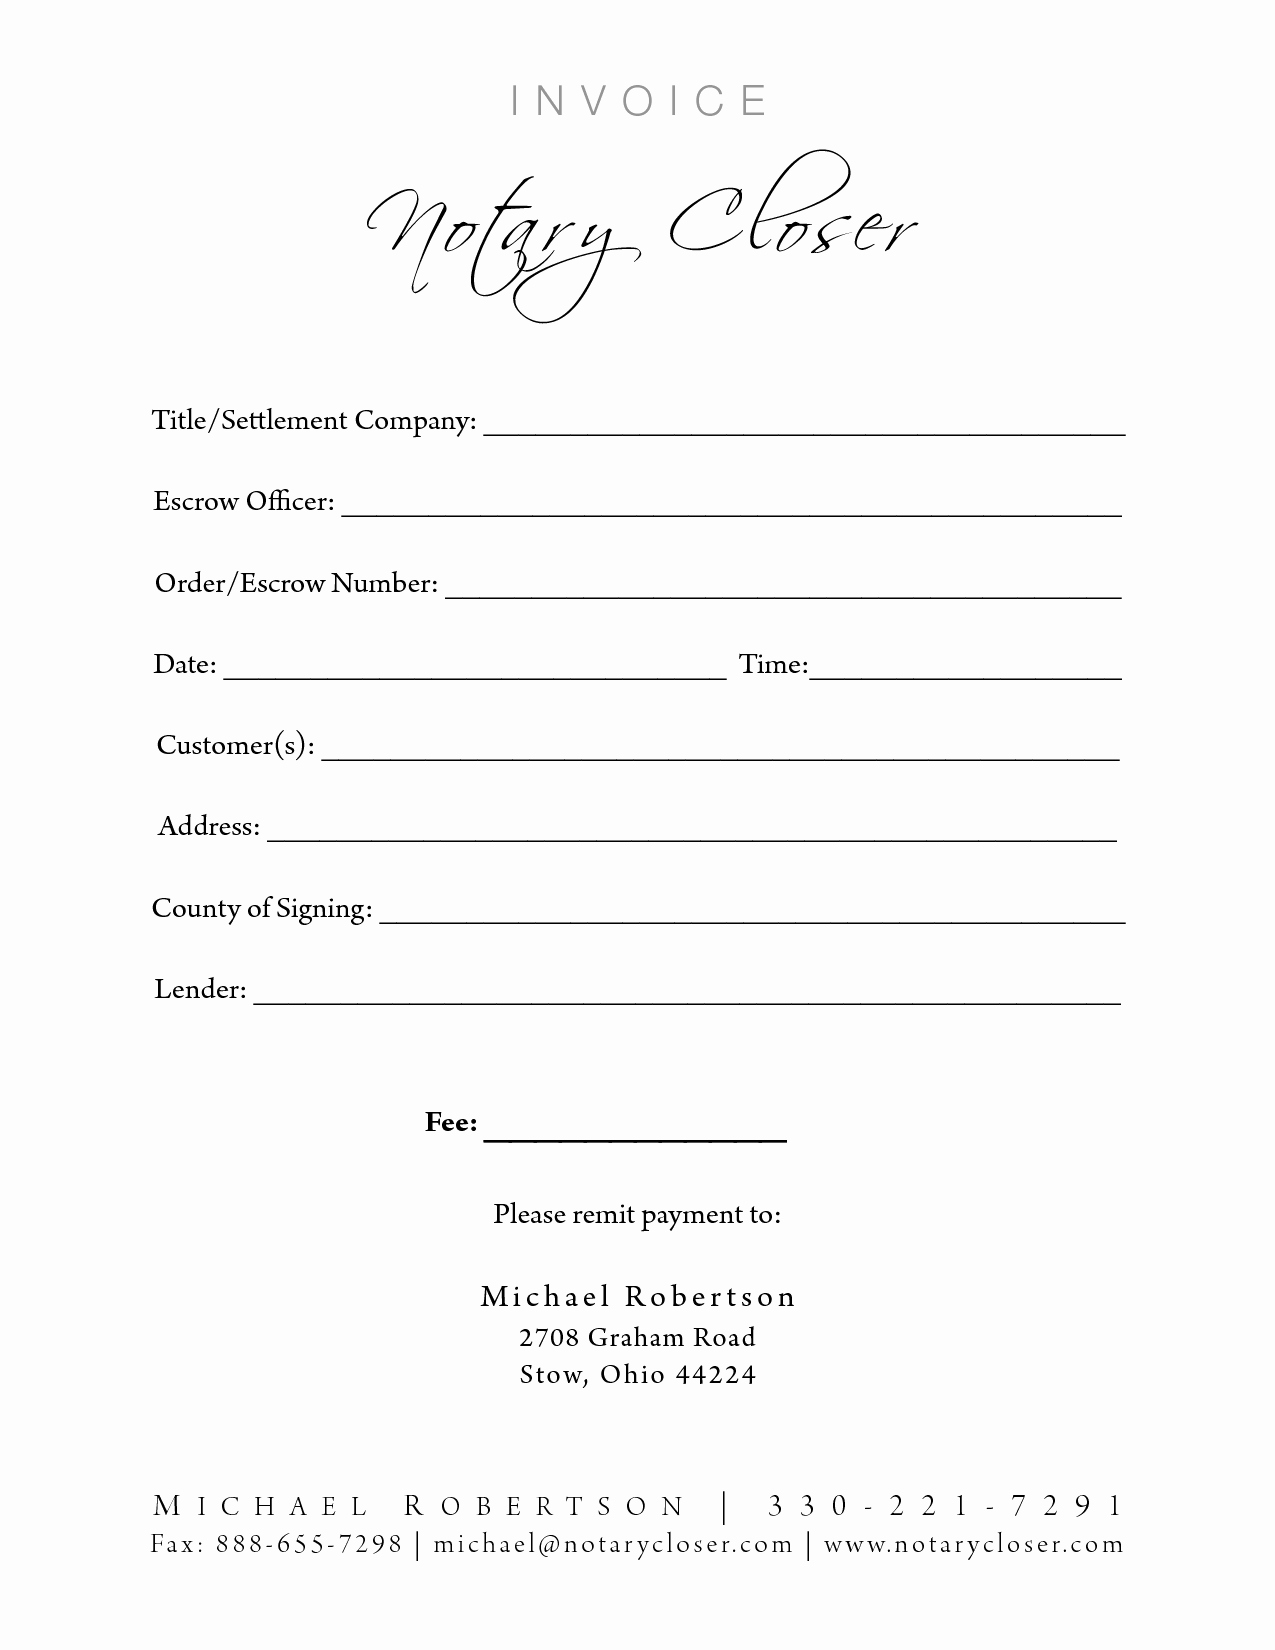 Notary Public Letter Template Best Of Doc Notary Template – Notarized Letter Templates